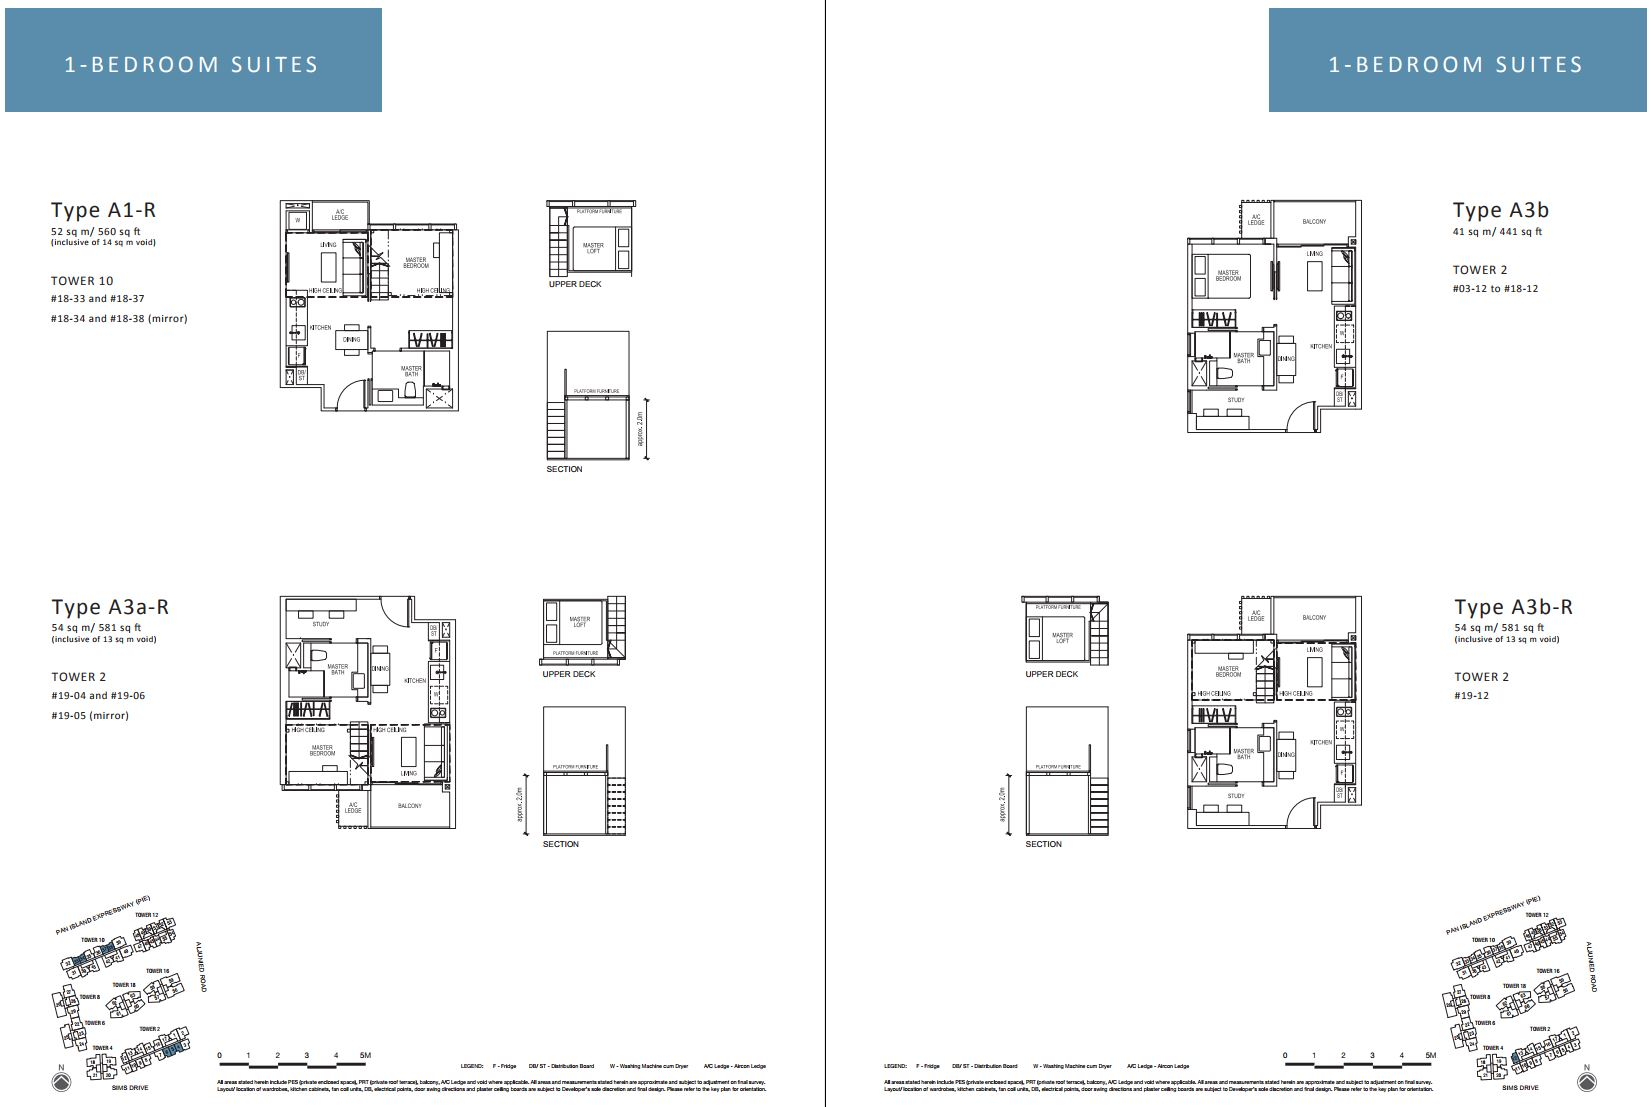 Sims Urban Oasis FloorPlan - 1 Bedroom Suites